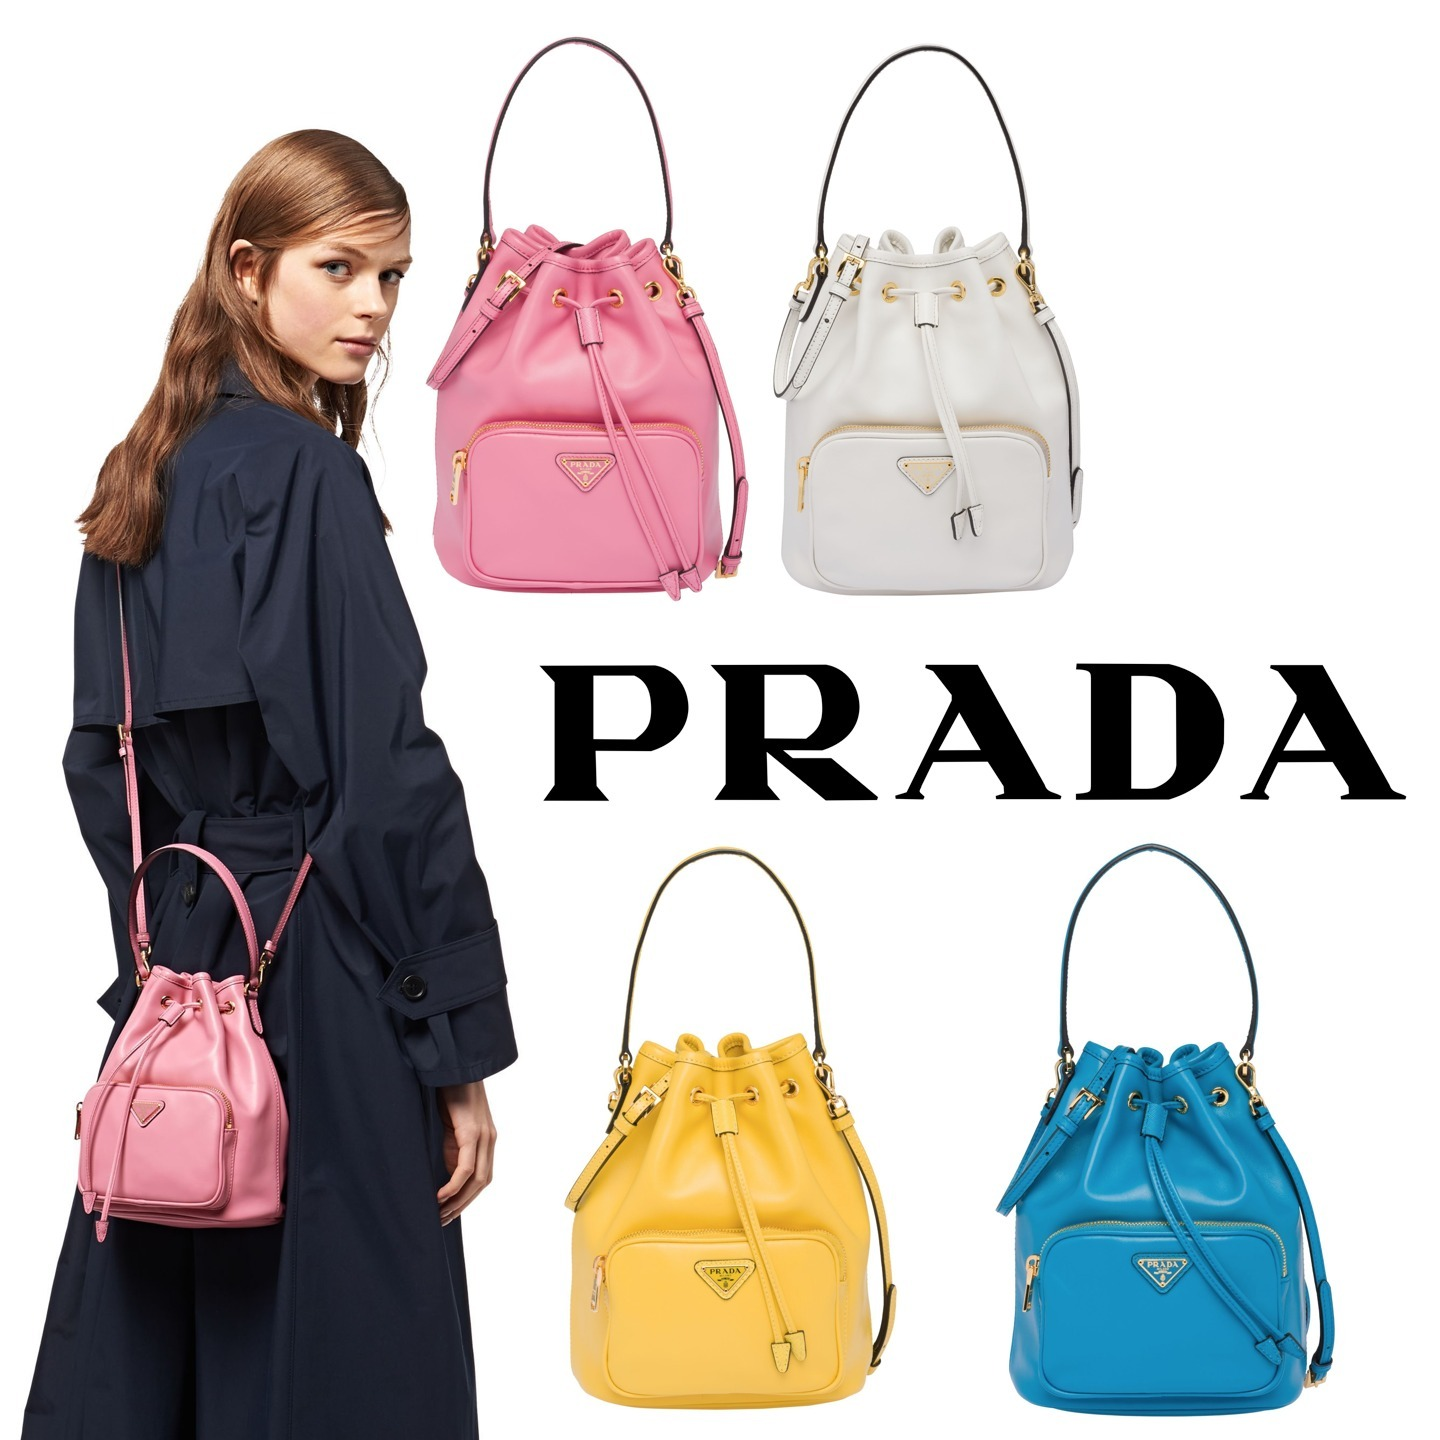 Shop Prada Casual Style Plain Leather Purses Crossbody Logo Bucket Bags By Flamenco Buyma